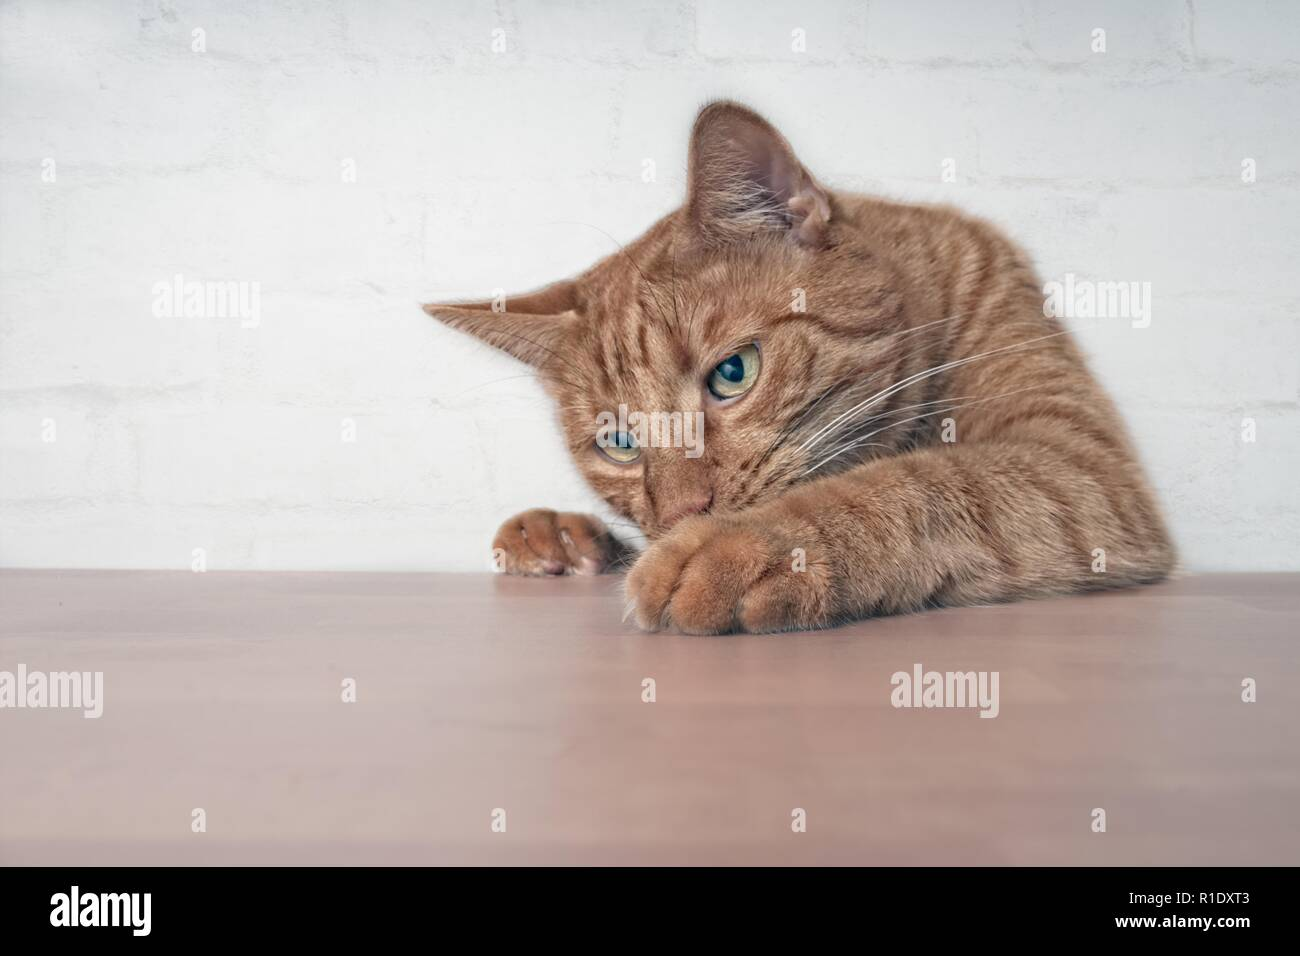 Naughty ginger cat montrant pattes sur table en bois. Photo Stock